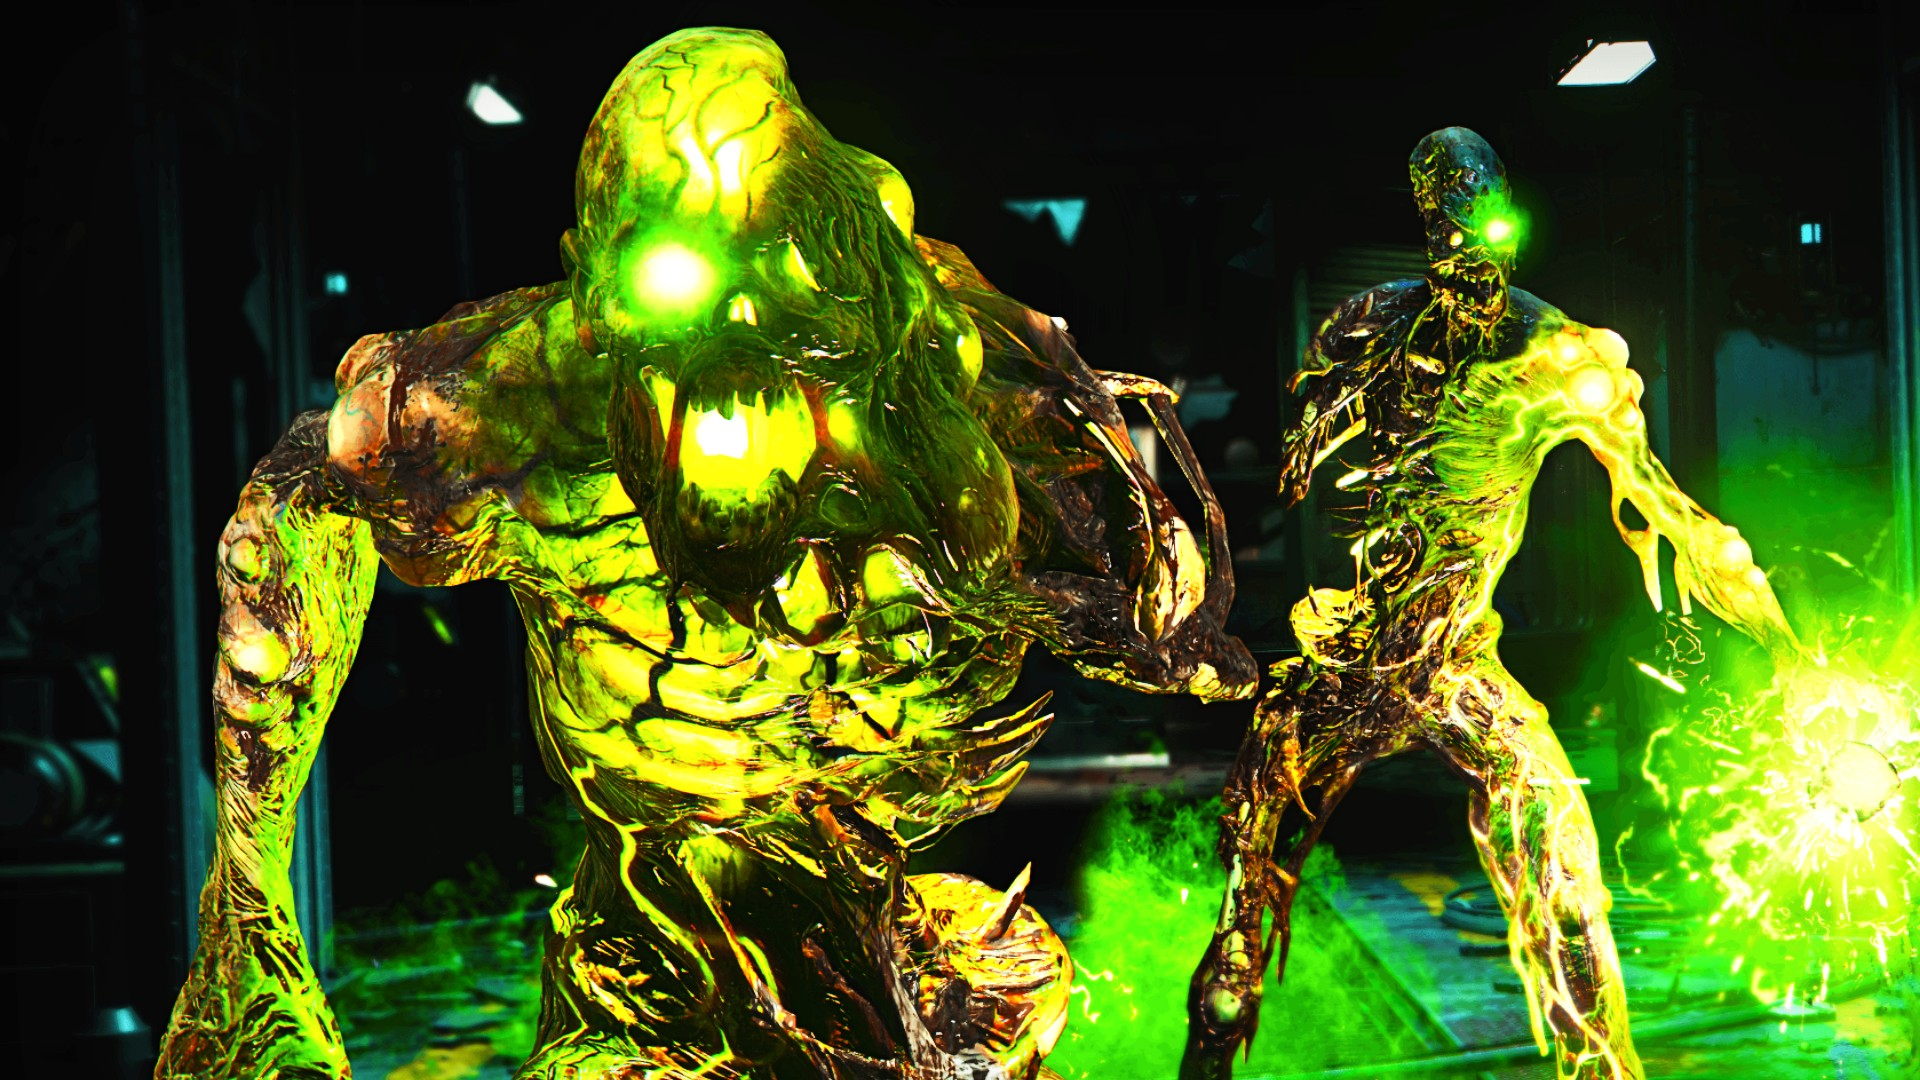 Glowing zombies from Call of Duty Outbreak